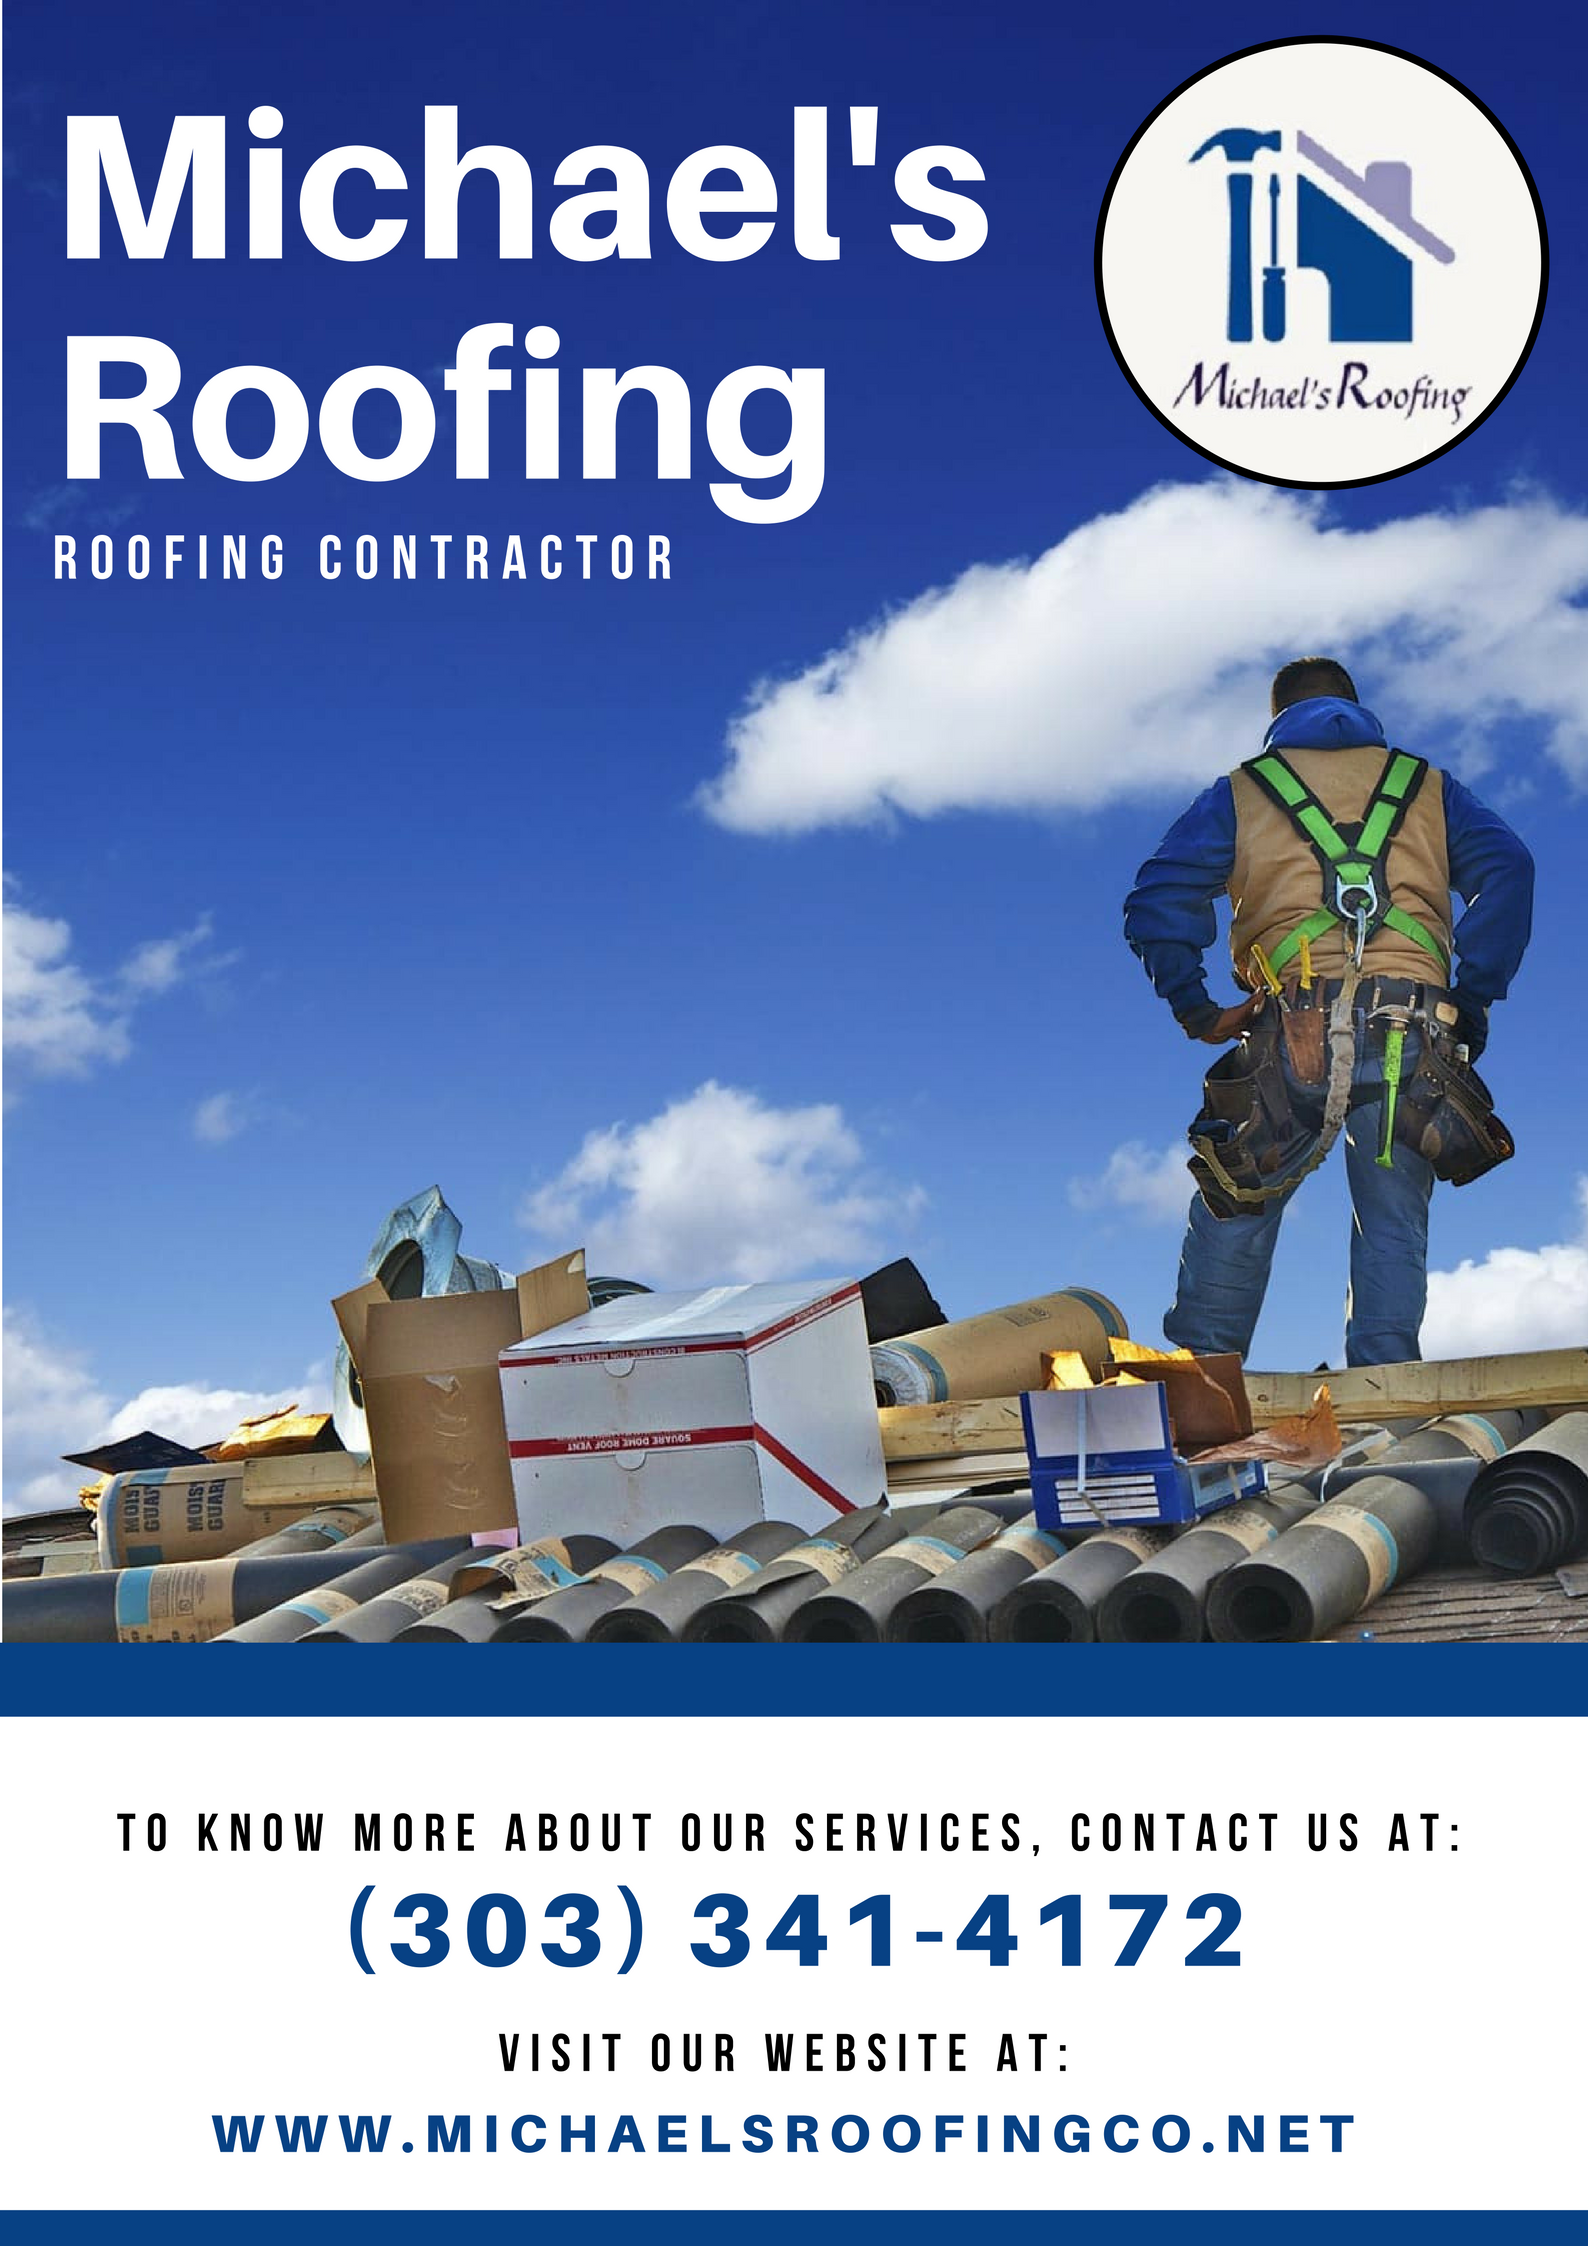 Services We Offer 80011 Roofer 80011 Roofing 80011 Roof Repair 80011 Roof Installers 80011 Roof Installation 80011 Roof Leak Repair 8 Roof Leak Repair Roofing